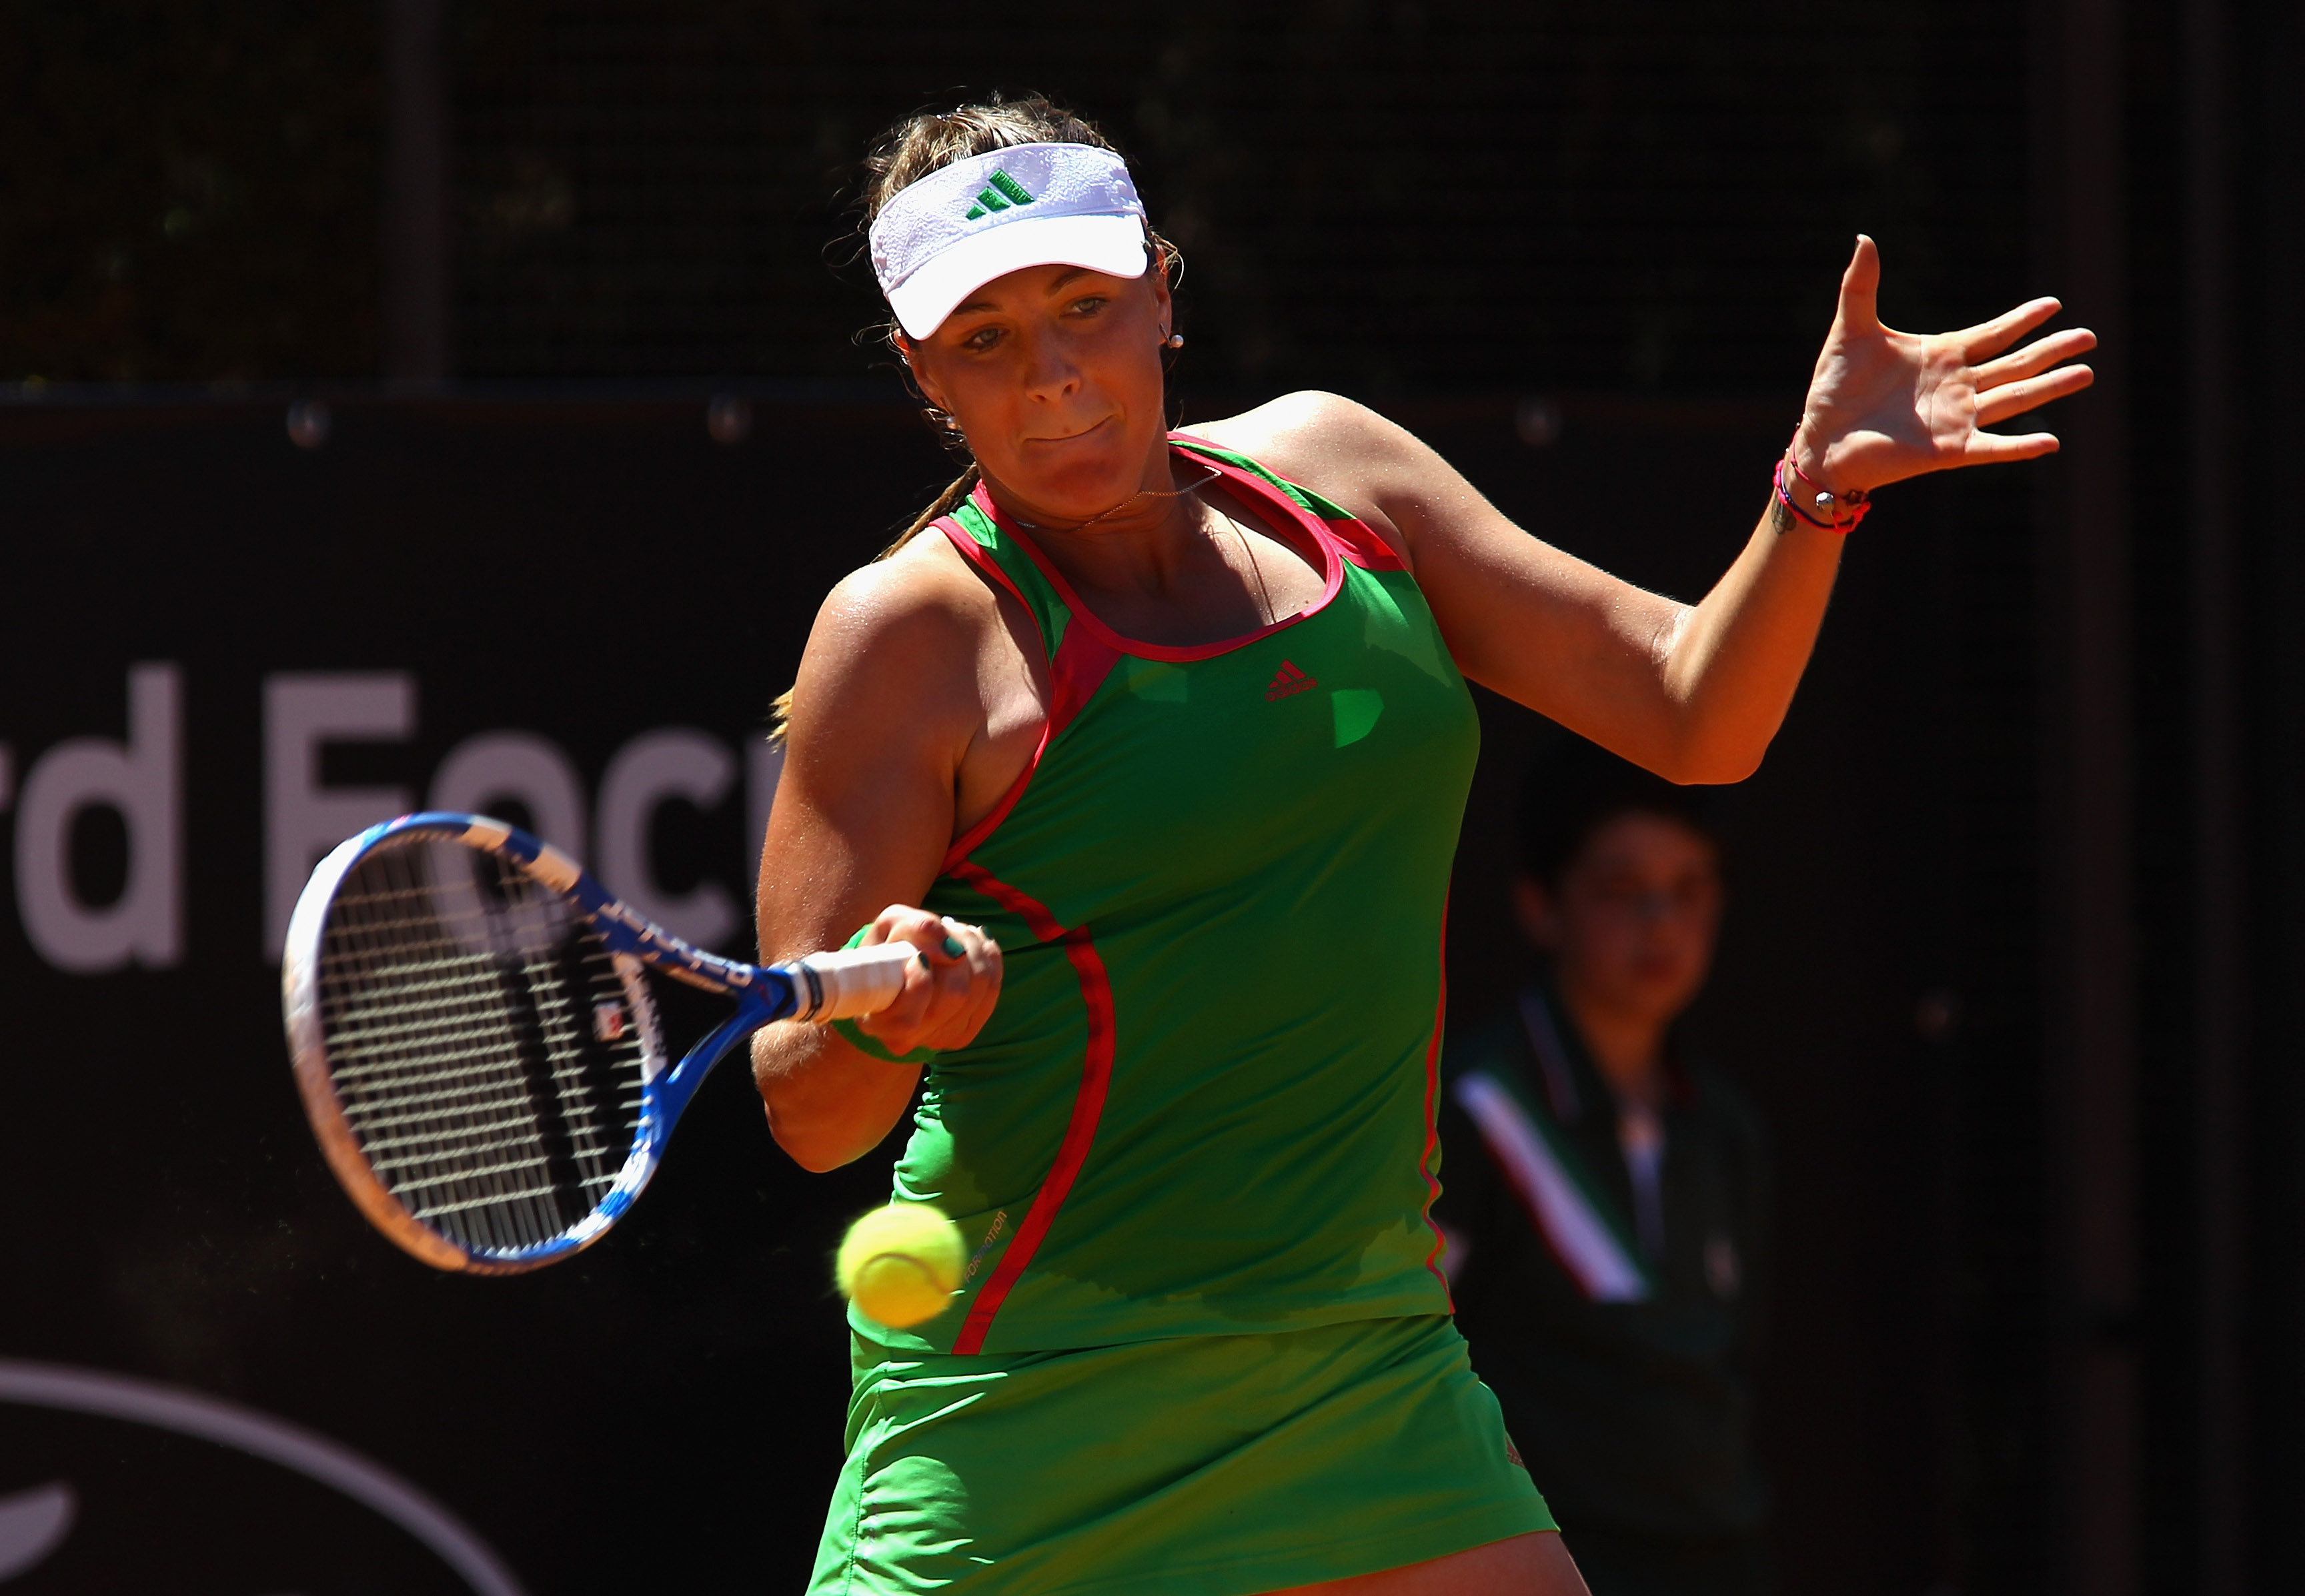 ROME, ITALY - MAY 11:  Anastasia Pavlyuchenkova of Russia plays a forehand return during her second round match against Vera Dushevina of Russia during day four of the Internazionali BNL d'Italia at the Foro Italico Tennis Centreon May 11, 2011 in Rome, I